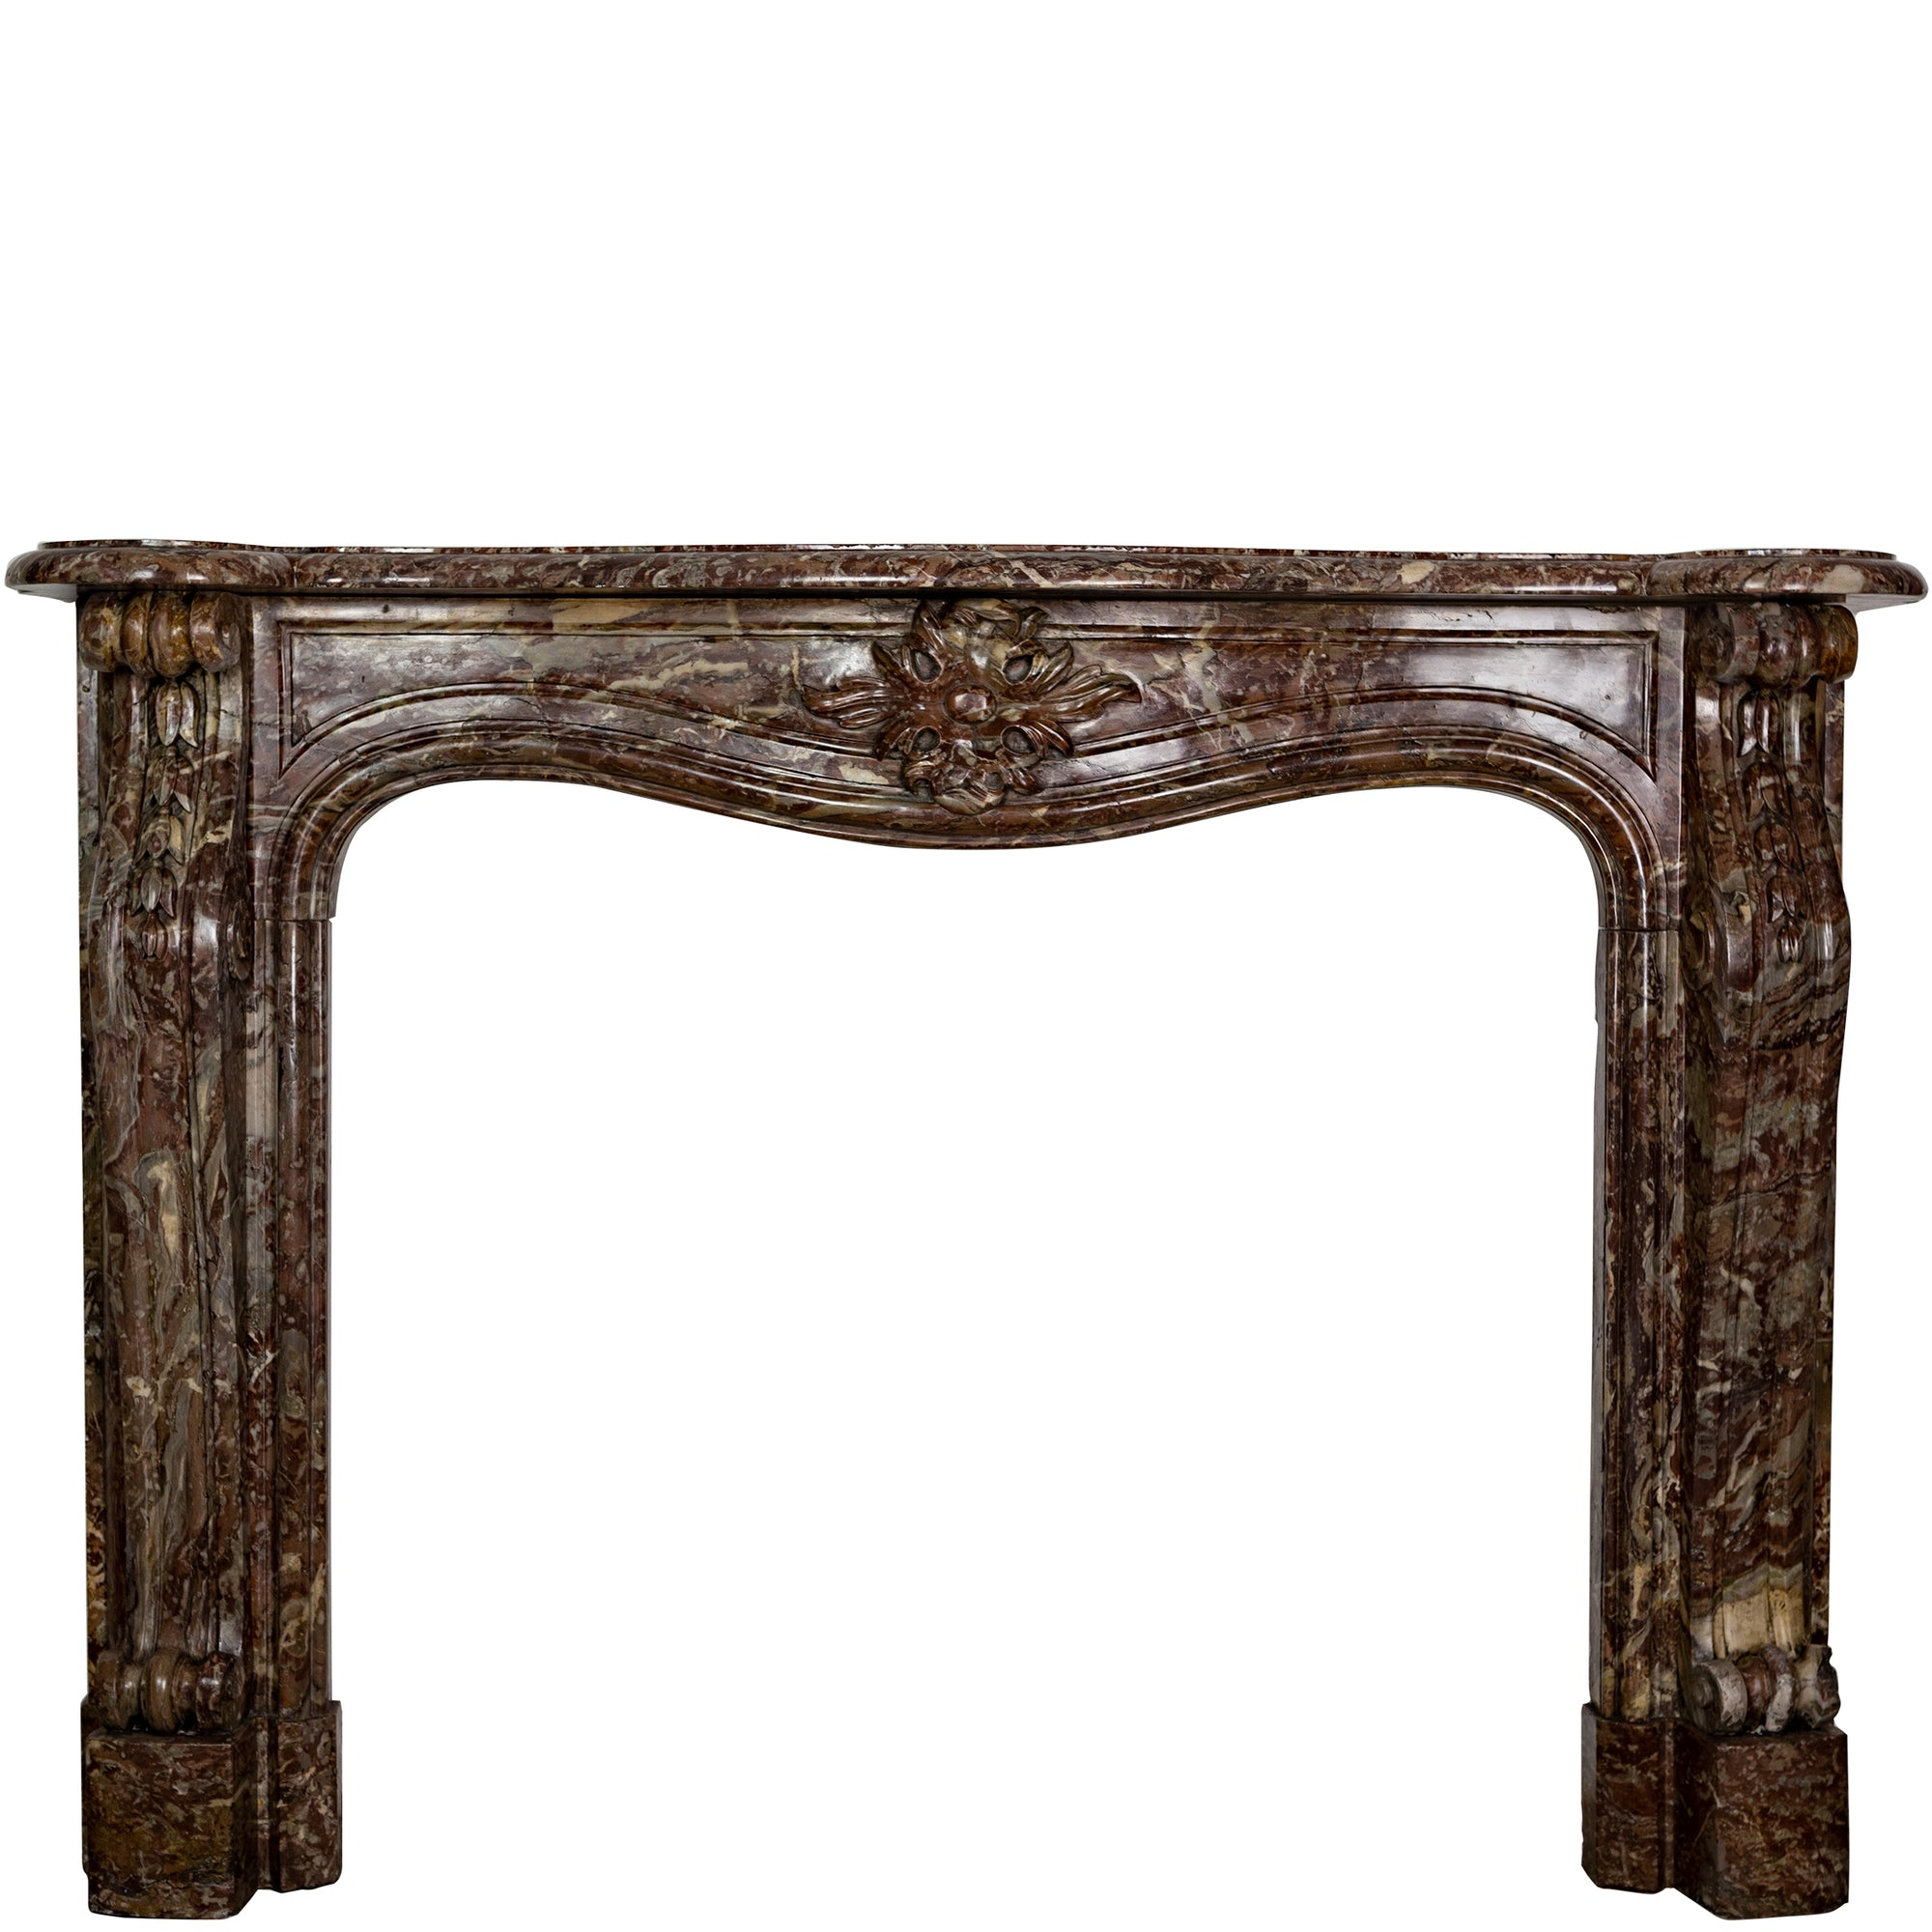 Louis XV Style Rococo Marble Fireplace Surround